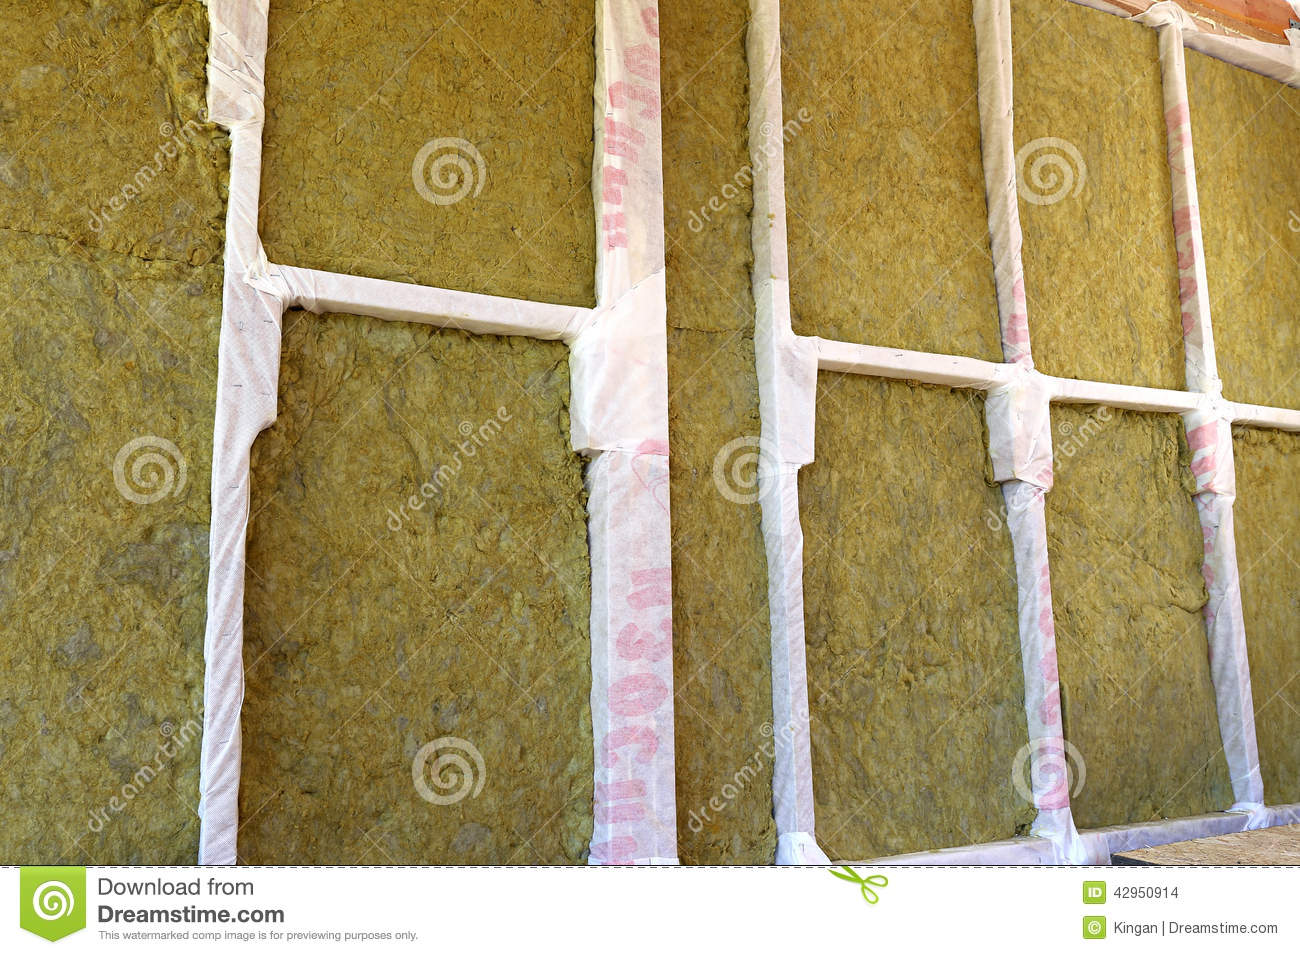 Wonderful Walls Of A Frame House With Different Types Of Heat Insulation